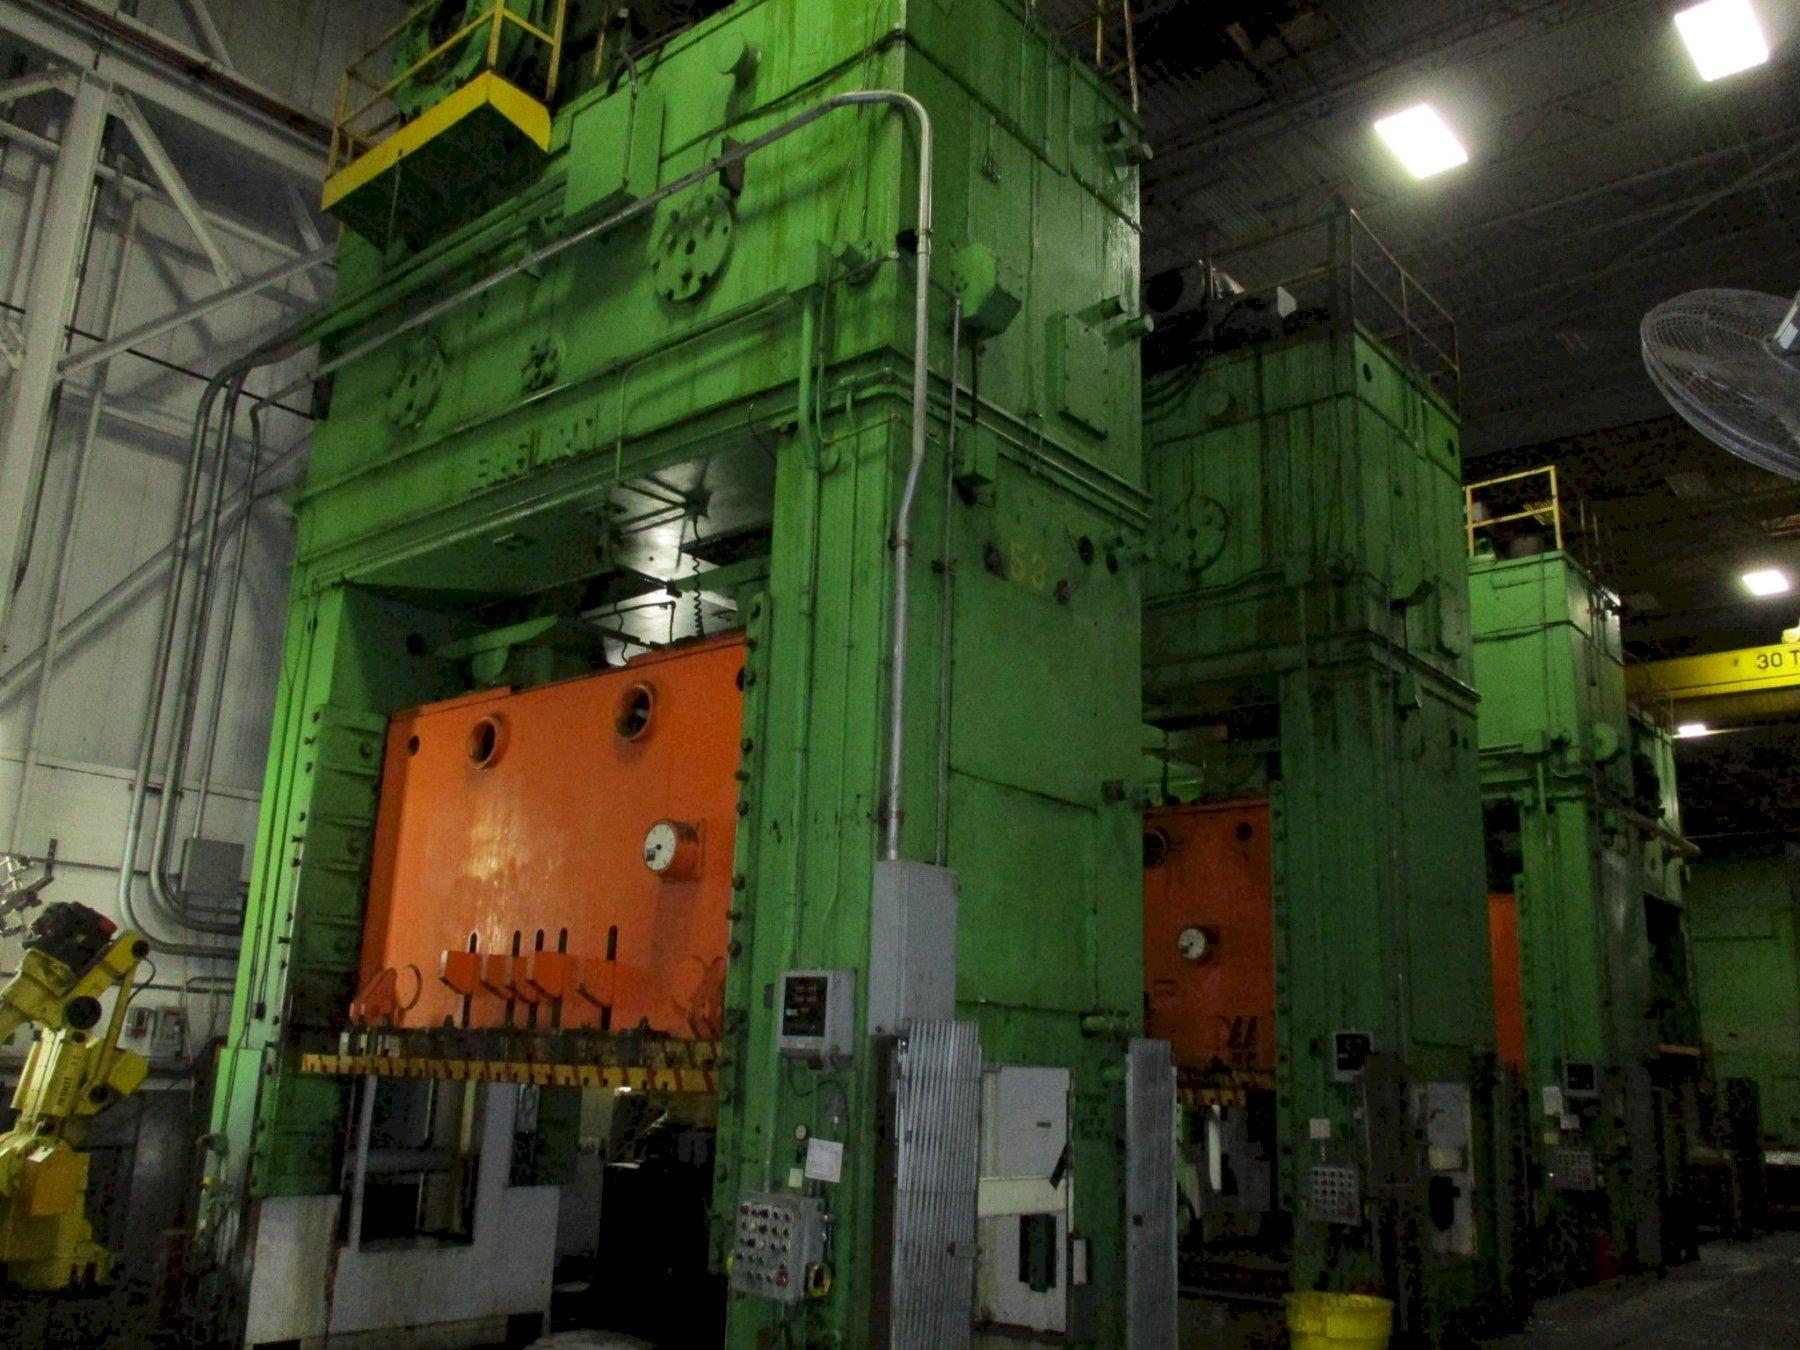 2200 TON ERFURT TANDEM PRESS LINE, CONSISTING OF (3) 2200 TON & (2) 1375 TON STRAIGHT SIDE DOUBLE CRANK MECHANICAL PRESSES